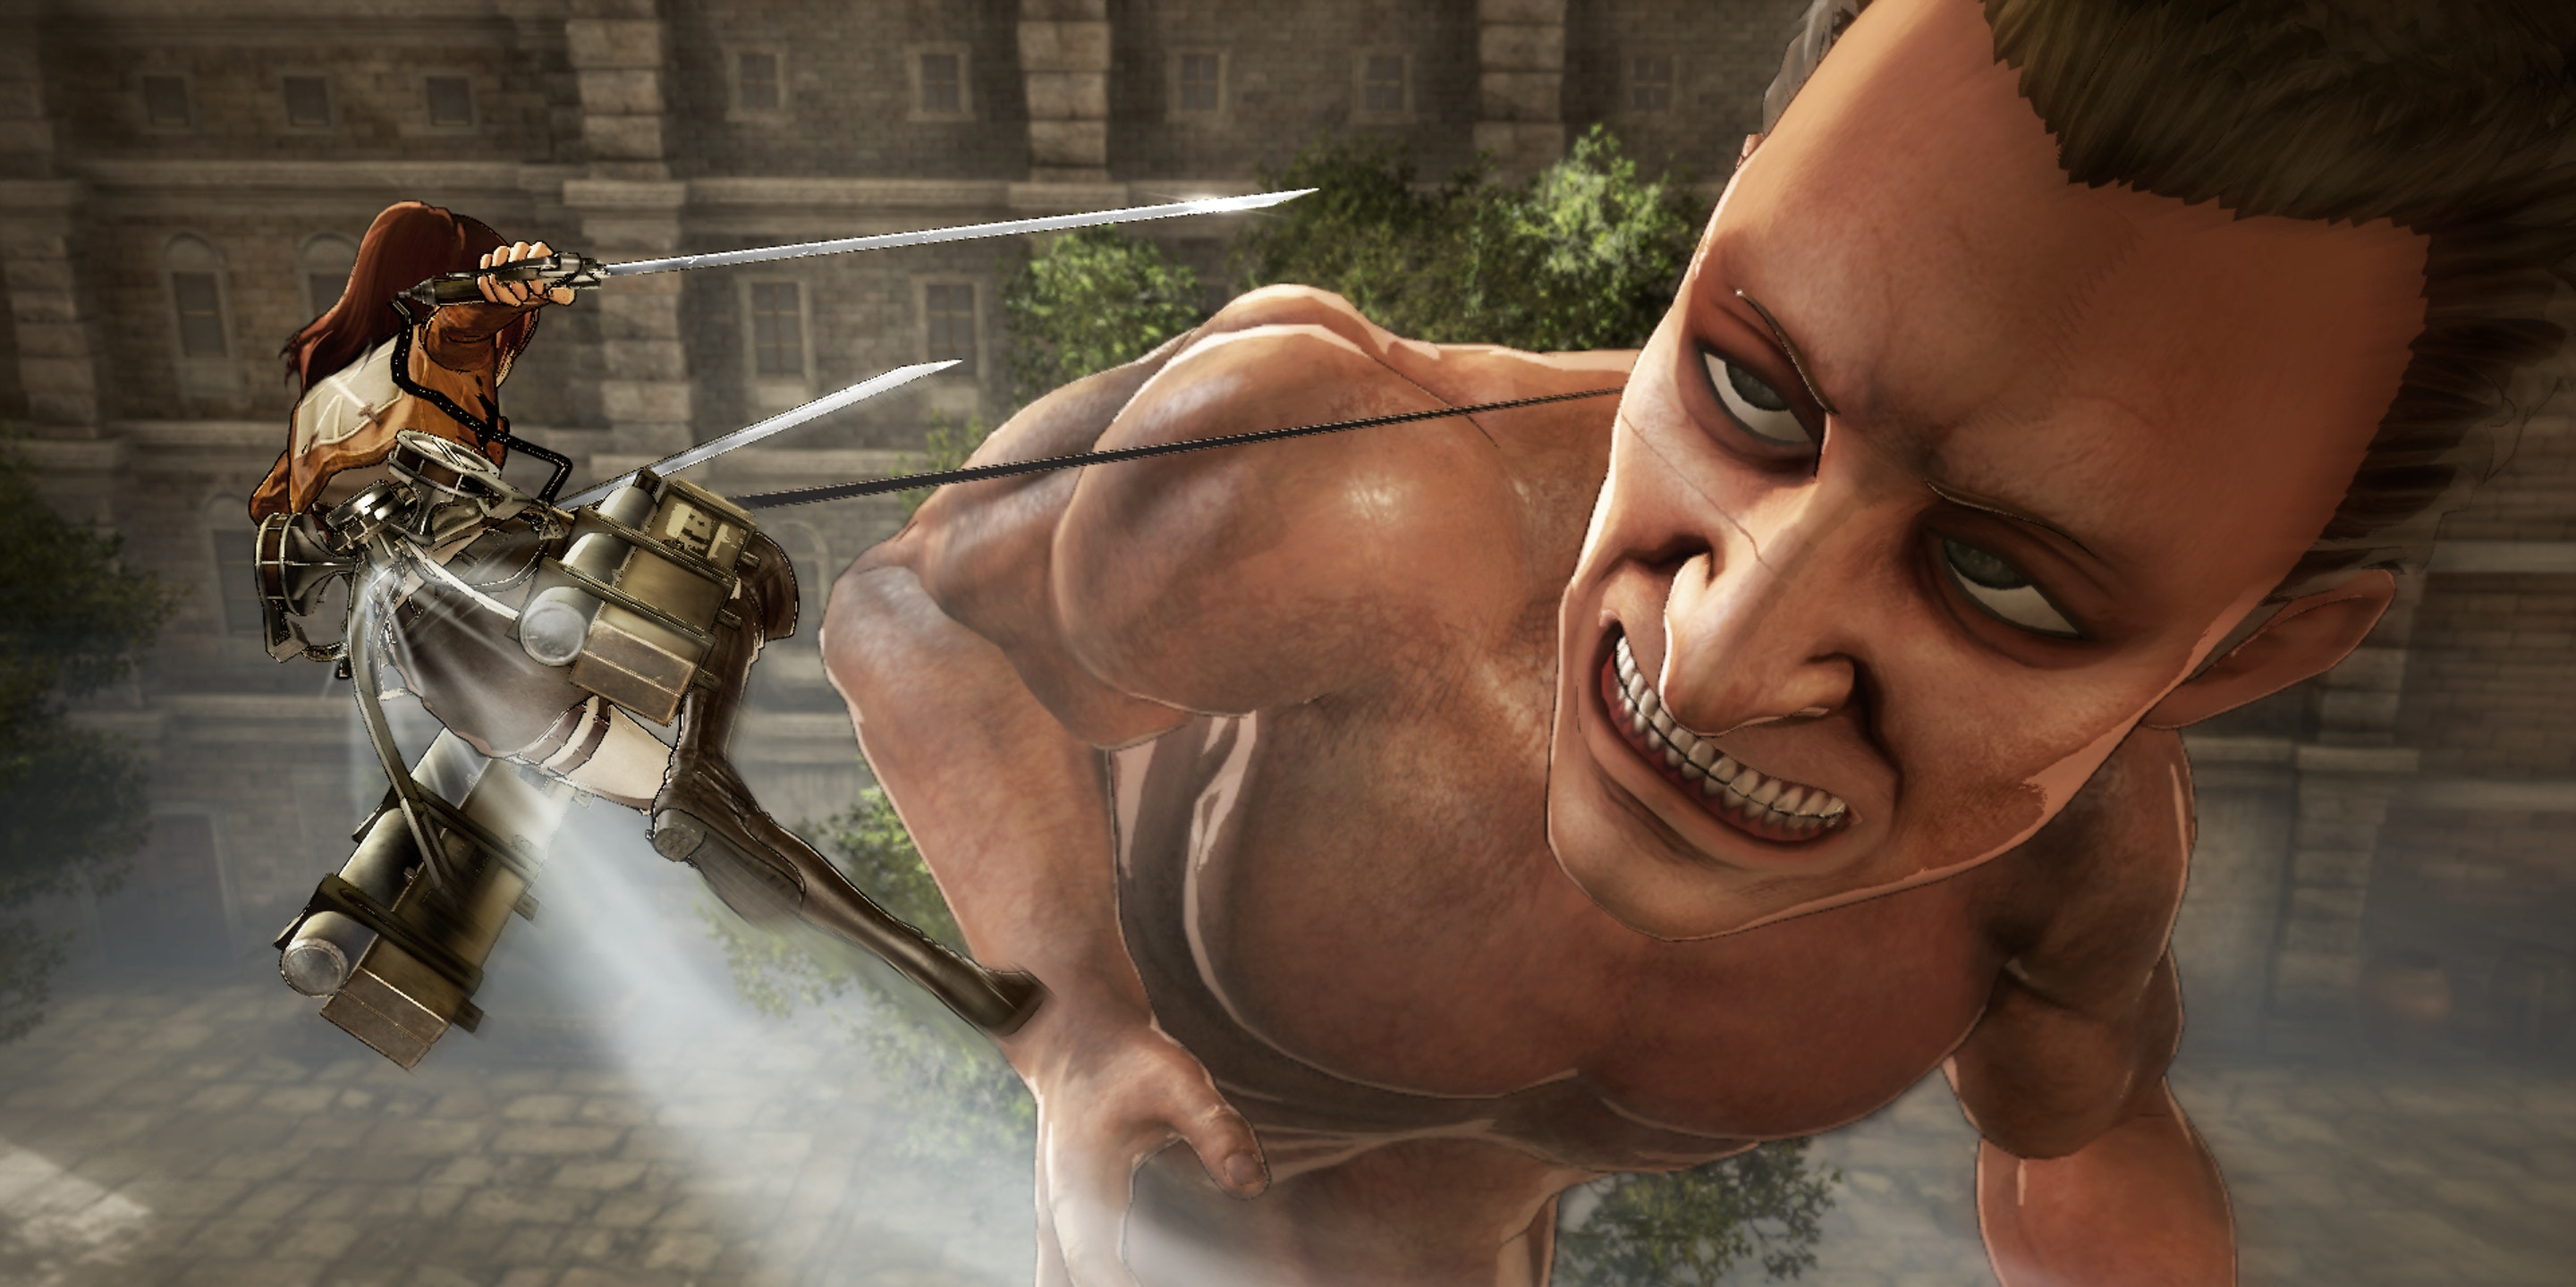 'Attack on Titan'